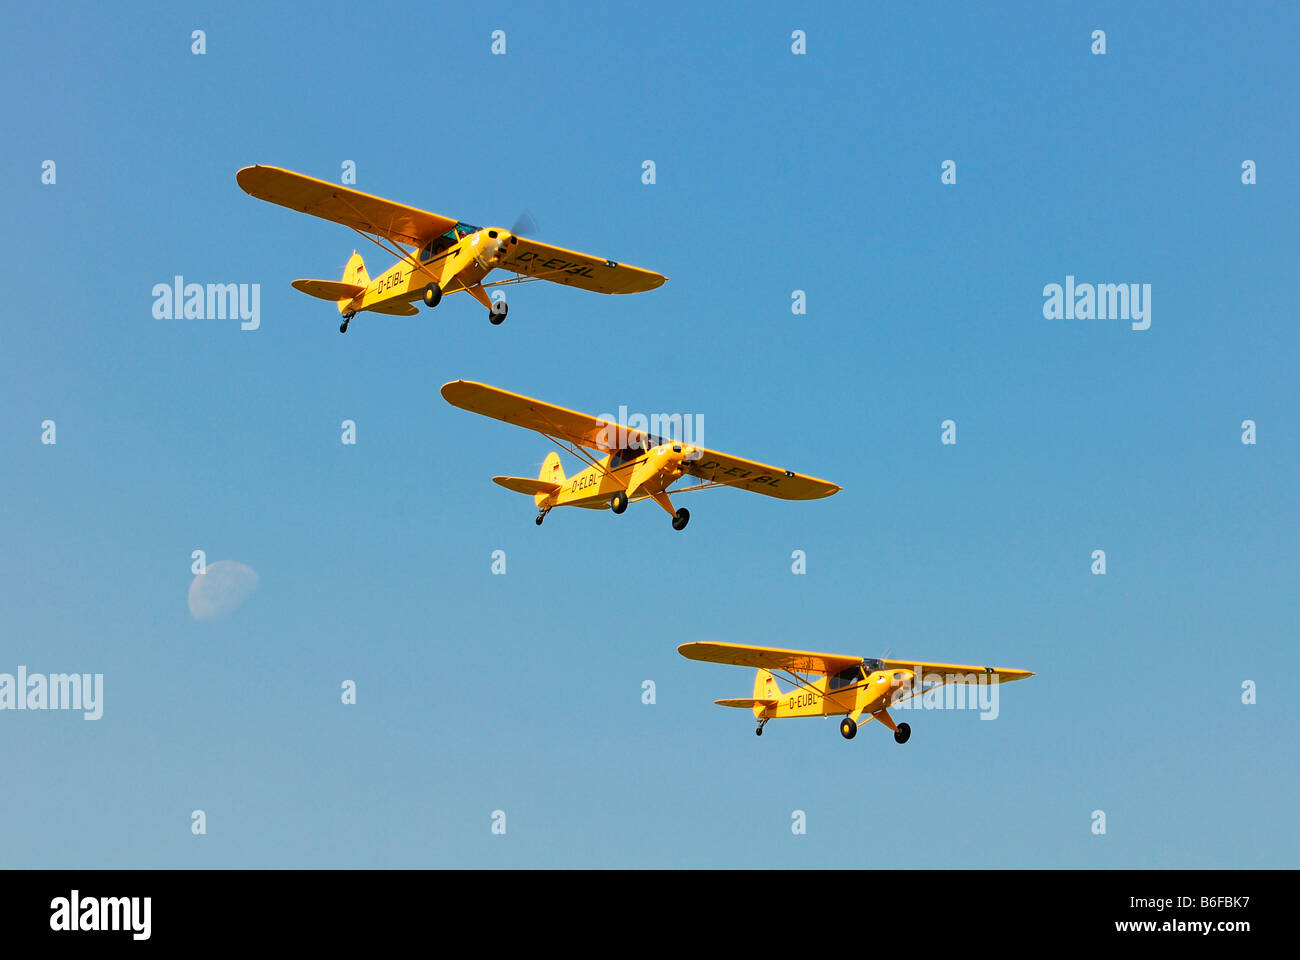 Three Piper L-21B Super Cubs flying in formation - Stock Image